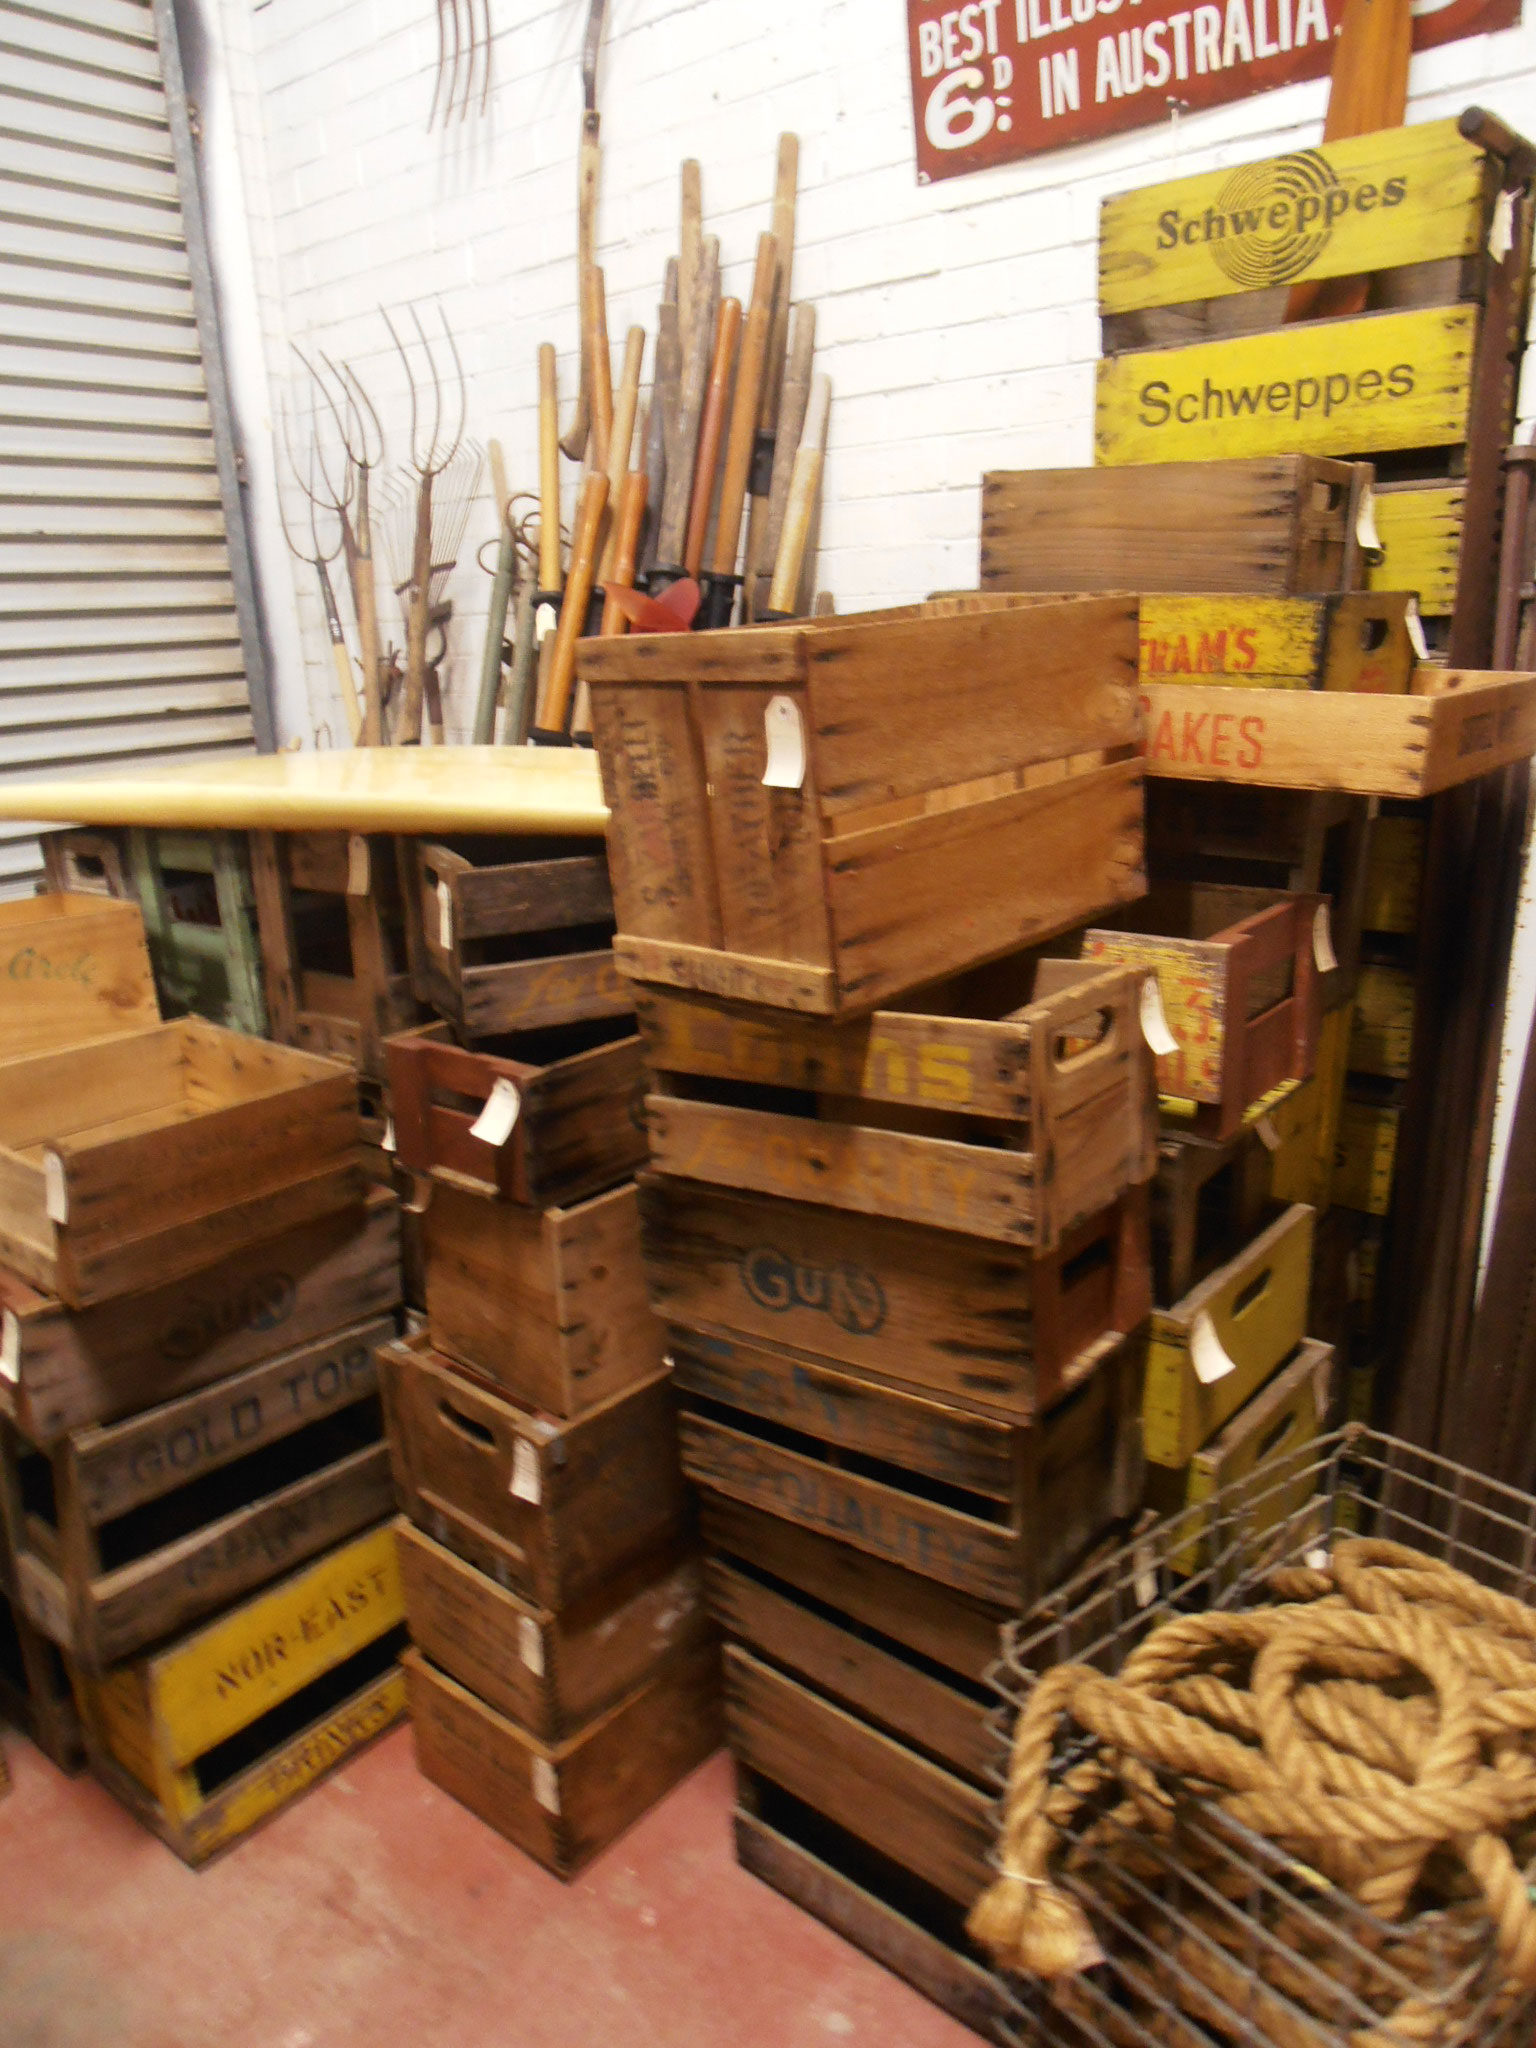 antique and vintage Boxes and crates For sale at Heaths Old Wares, Antiques, Collectables and industrial antiques 12 station St bangalow NSW phone 0266872222 open 7 days